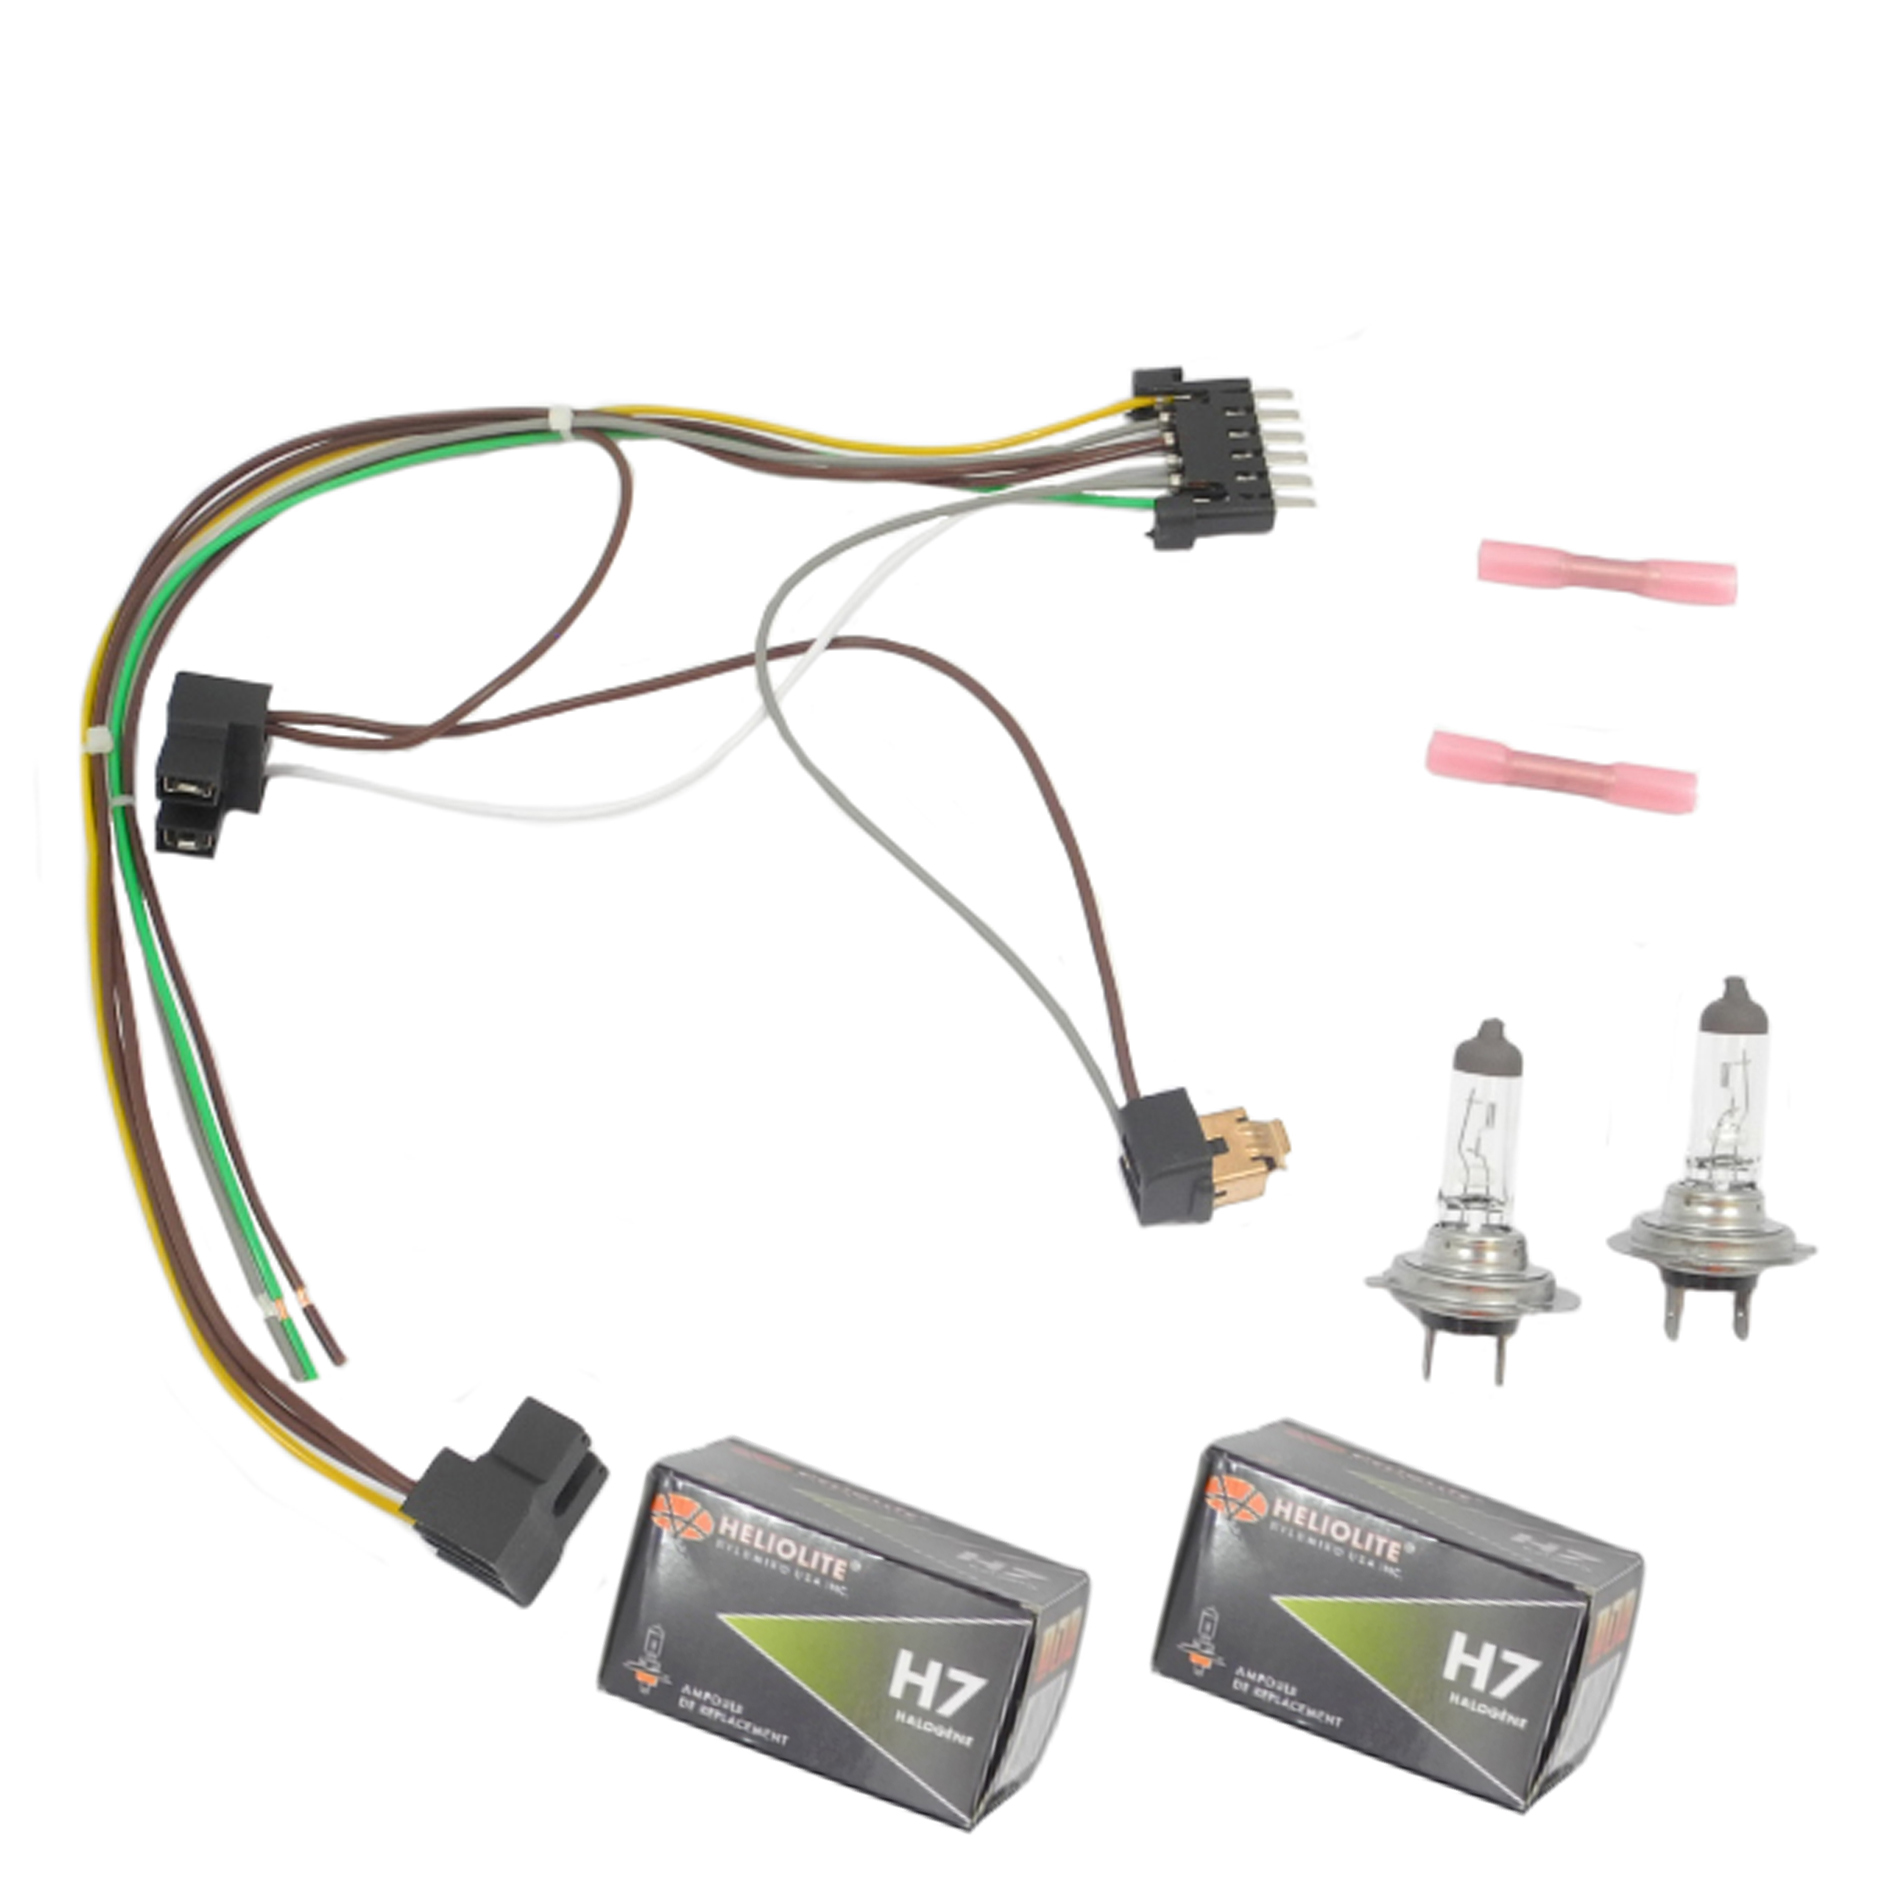 hight resolution of for benz s430 s500 left right headlight wiring harness h7 55w headlight bulb